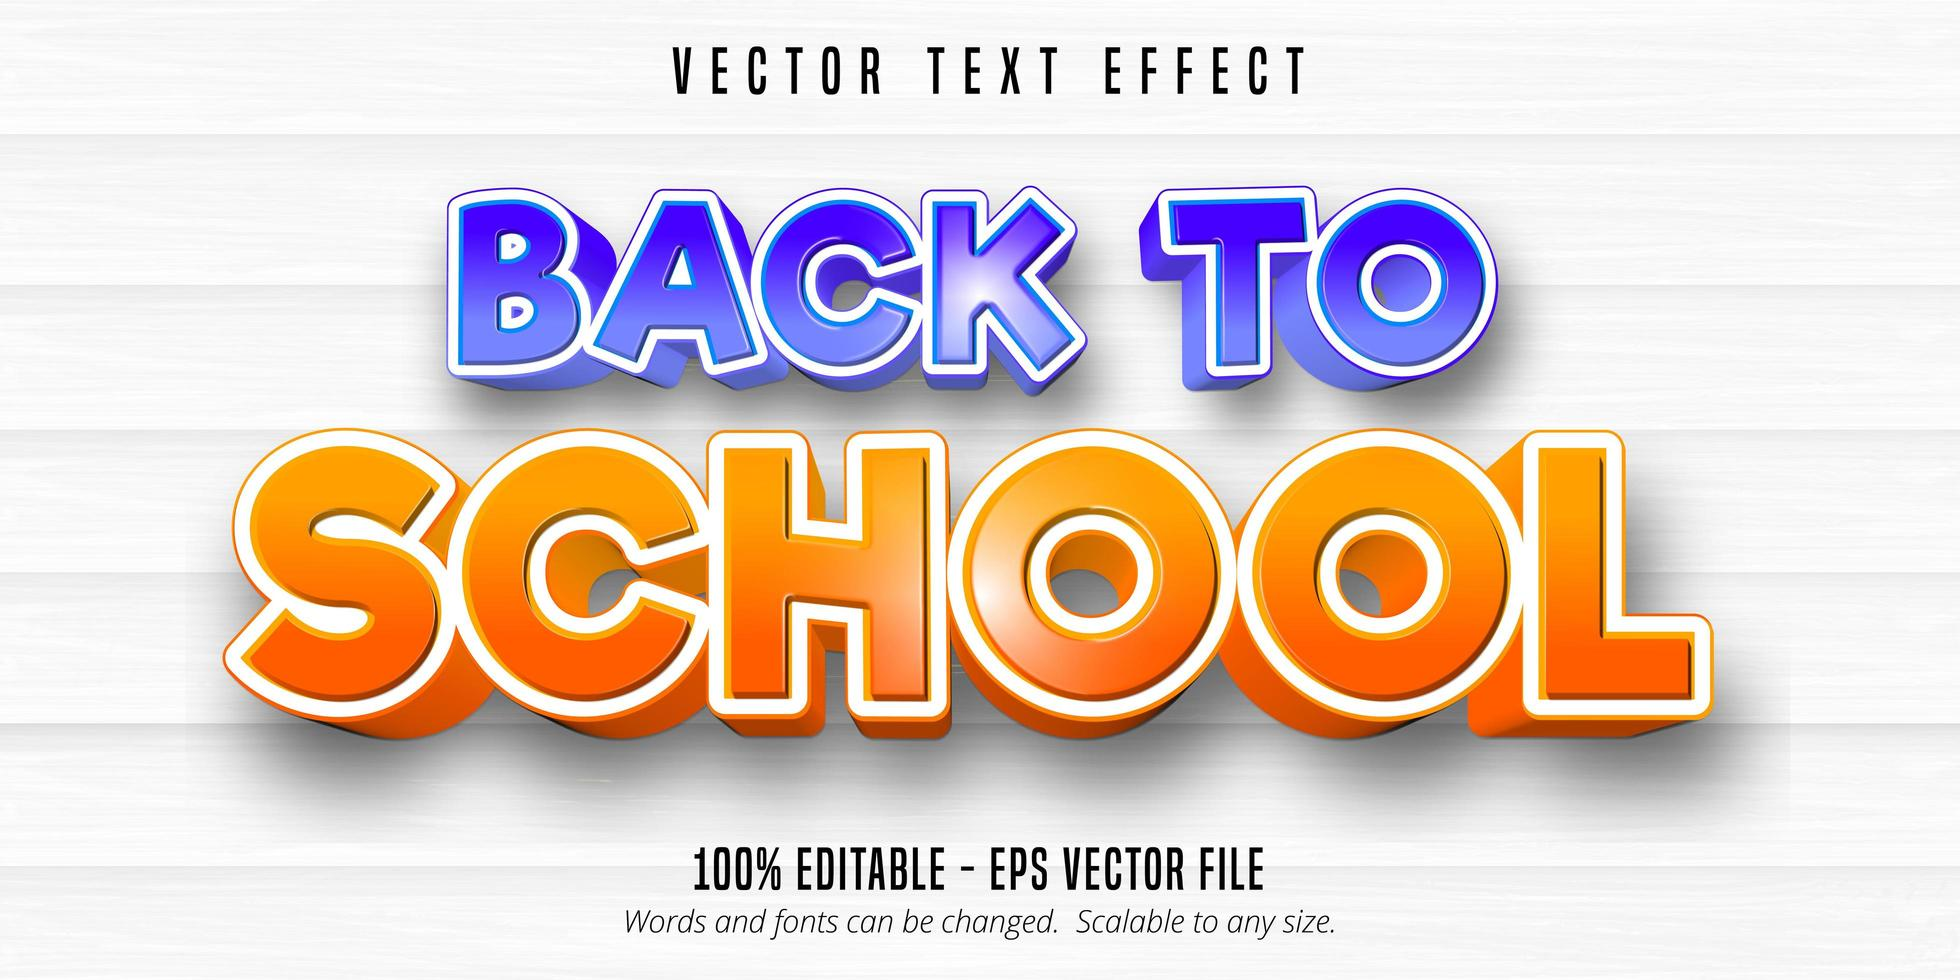 Back to school comic style editable text effect vector